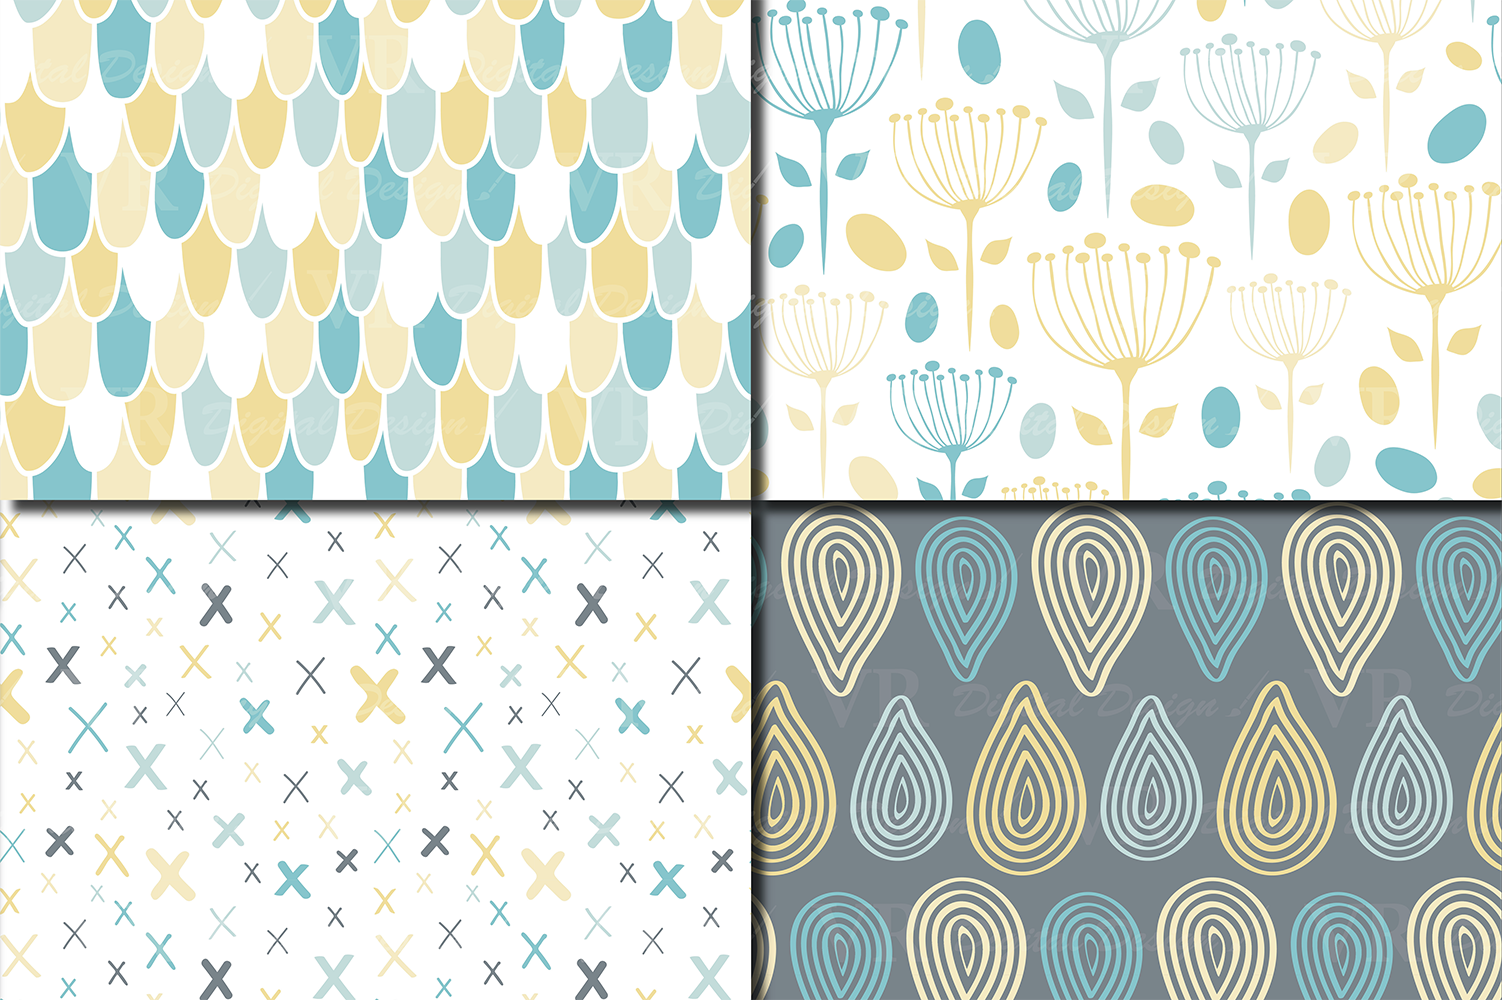 Blue and Yellow Seamless Digital Paper / Pastel Hand drawn patterns / Scales, Hearts, Leaves, Terrazzo Backgrounds example image 3